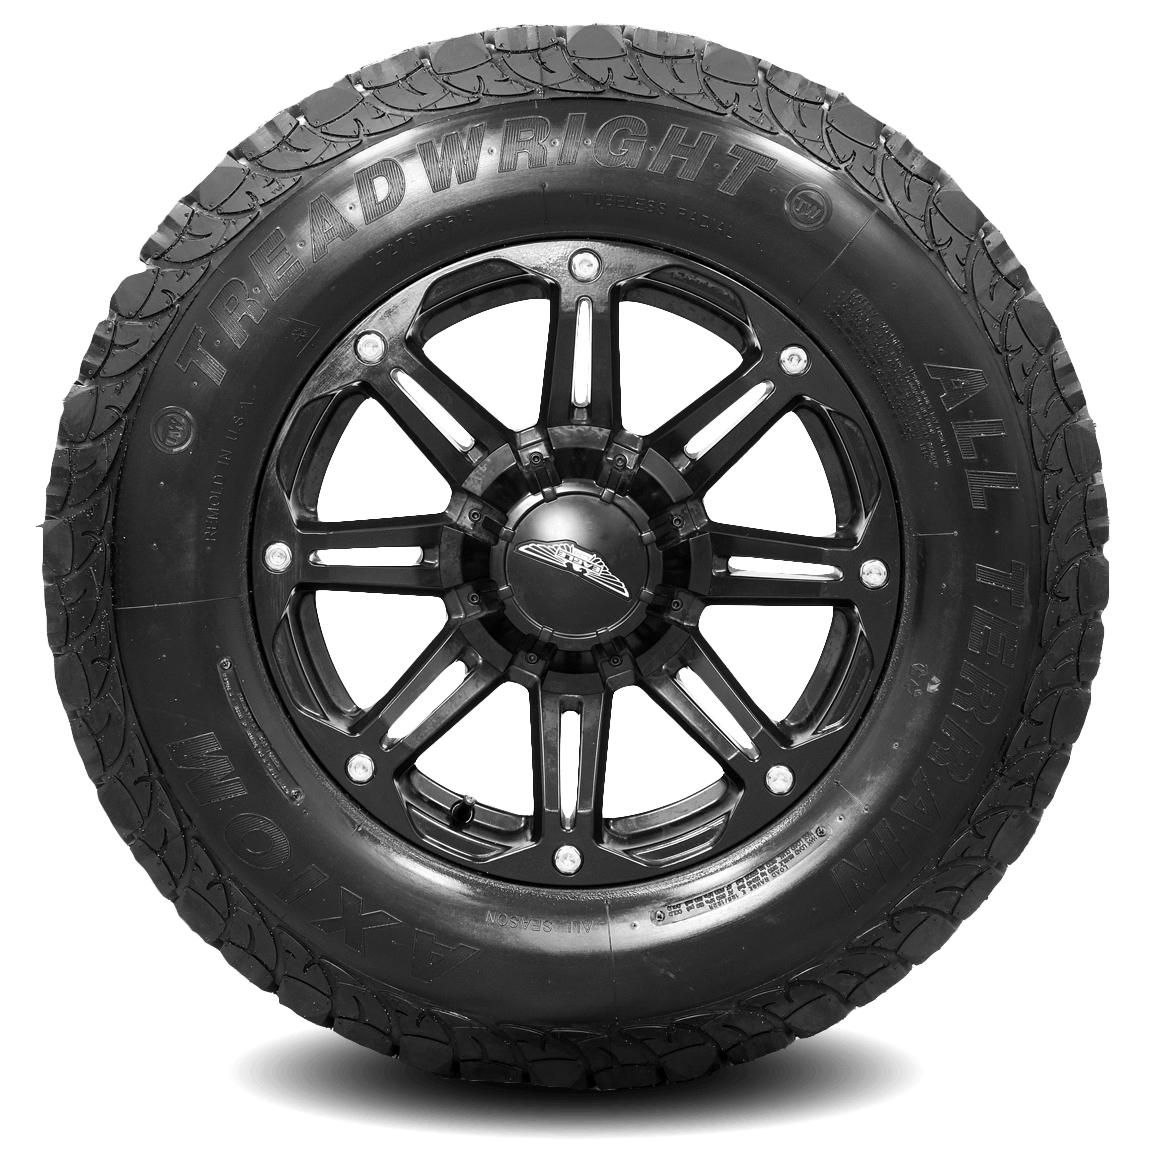 Introducing TreadWright's New Tread Pattern - Axiom II